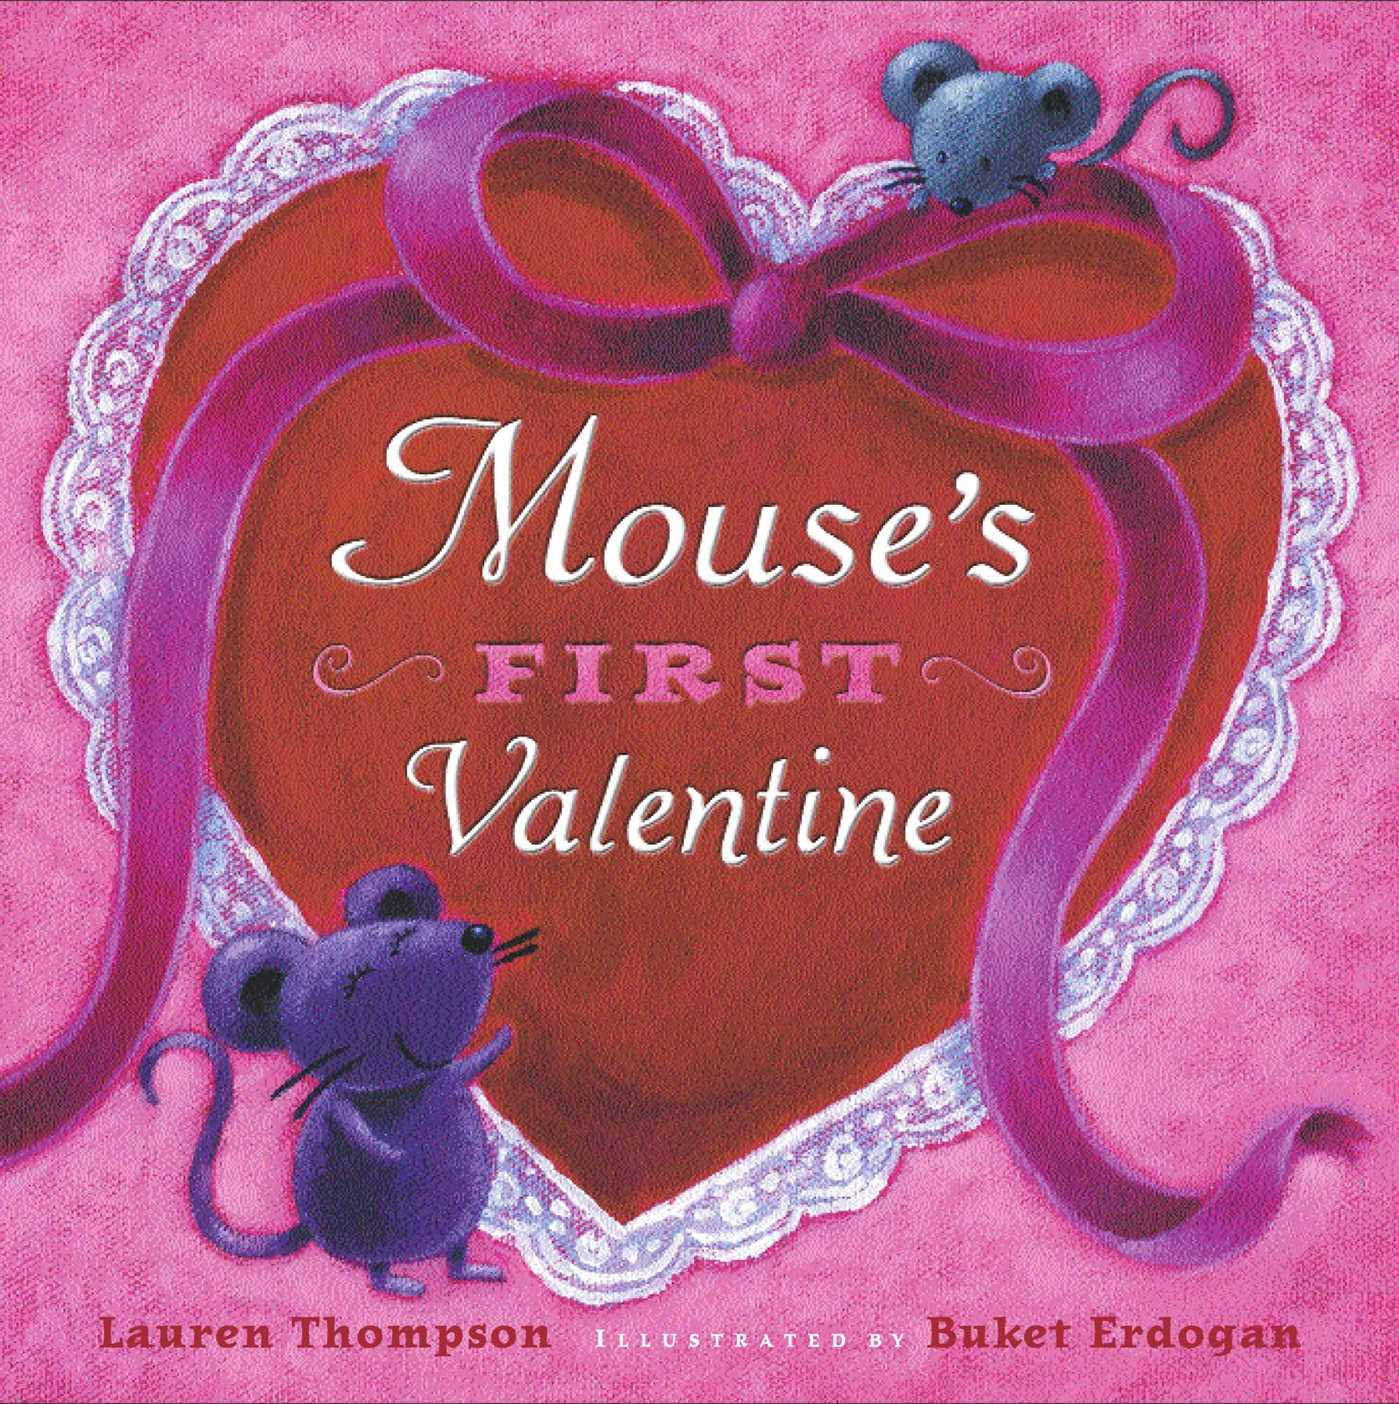 Mouses-first-valentine-9781442457683_hr